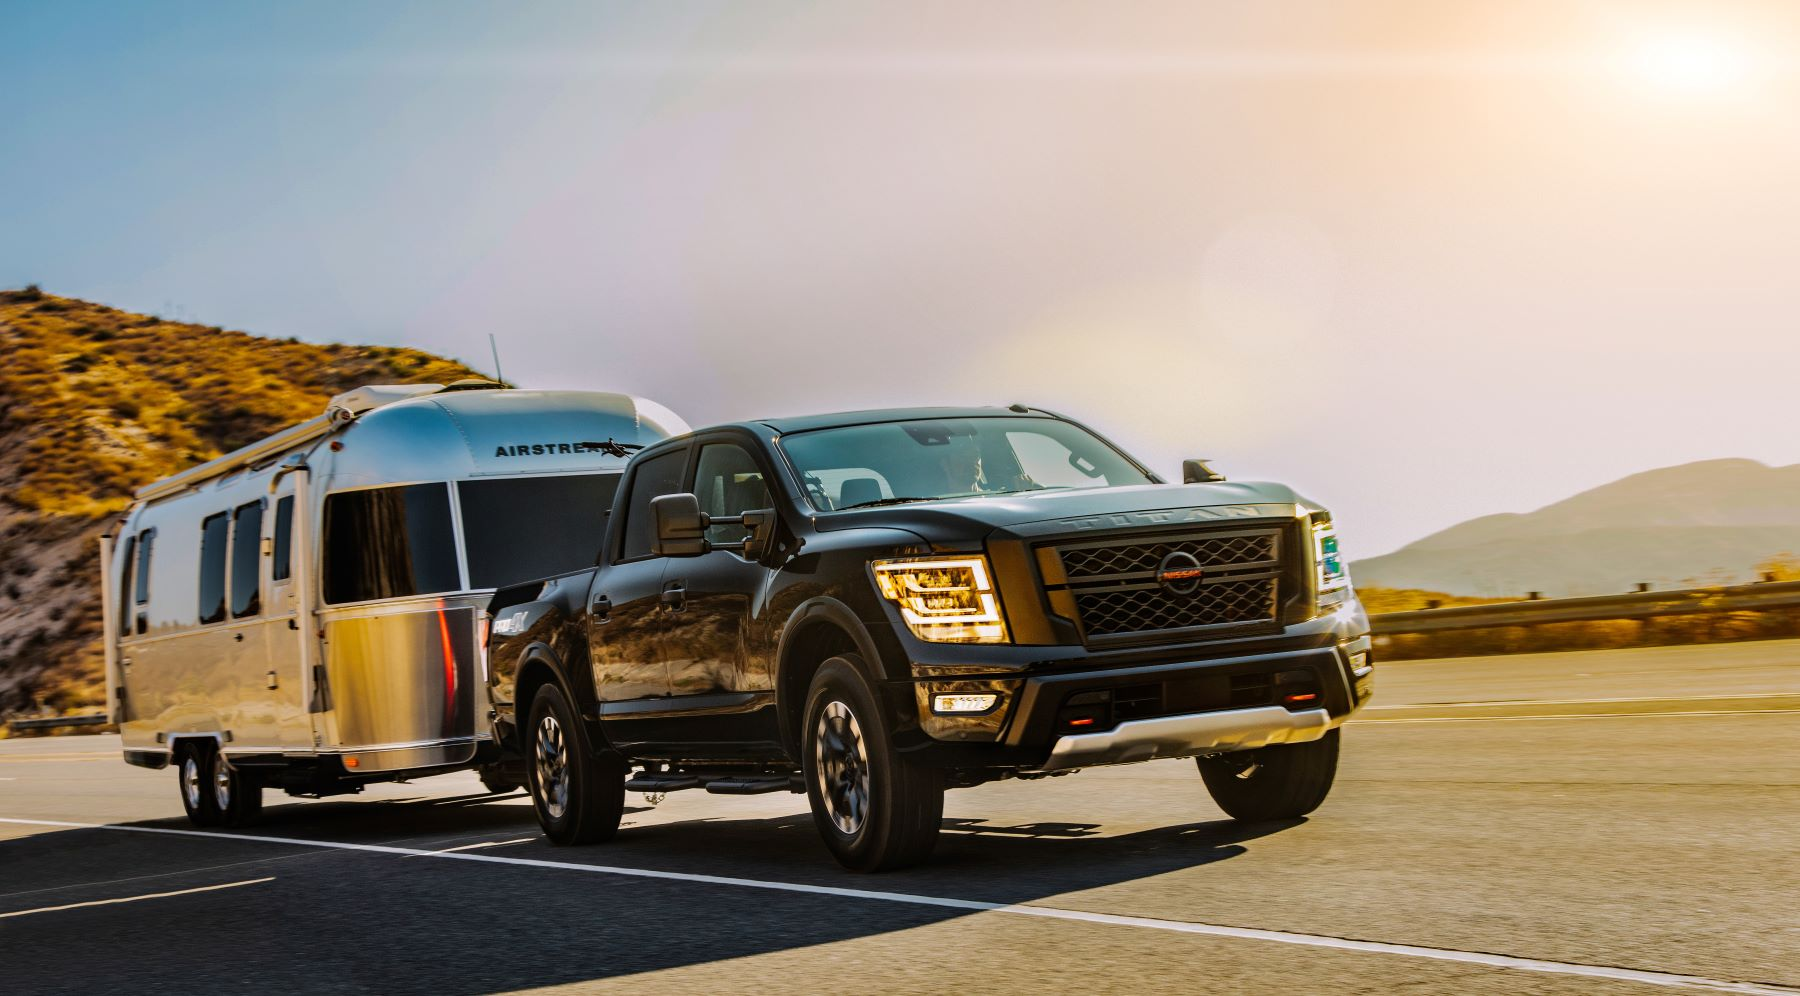 The 2021 Nissan Titan full-size pickup truck towing an Airstream trailer